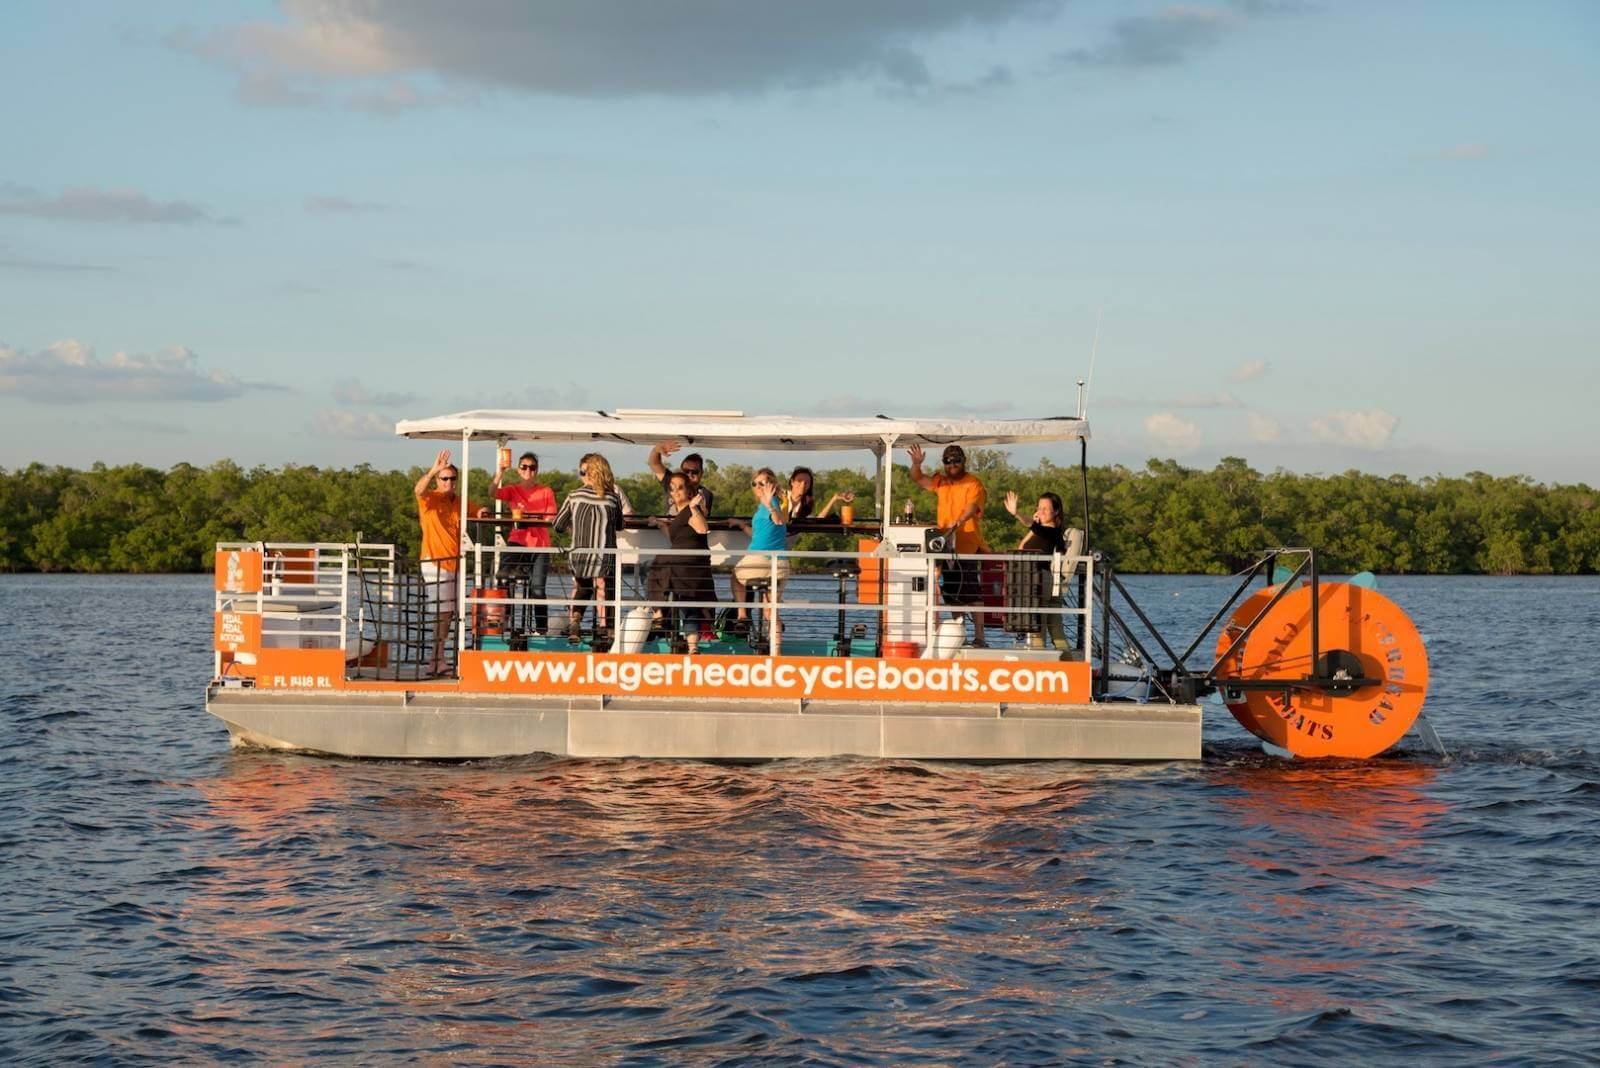 A fun pedal power cruise that includes a stop at a Fort Myers Beach bar/restaurant. Pedal at your own pace while your captain navigates the boat on this adventurous and unique tour.